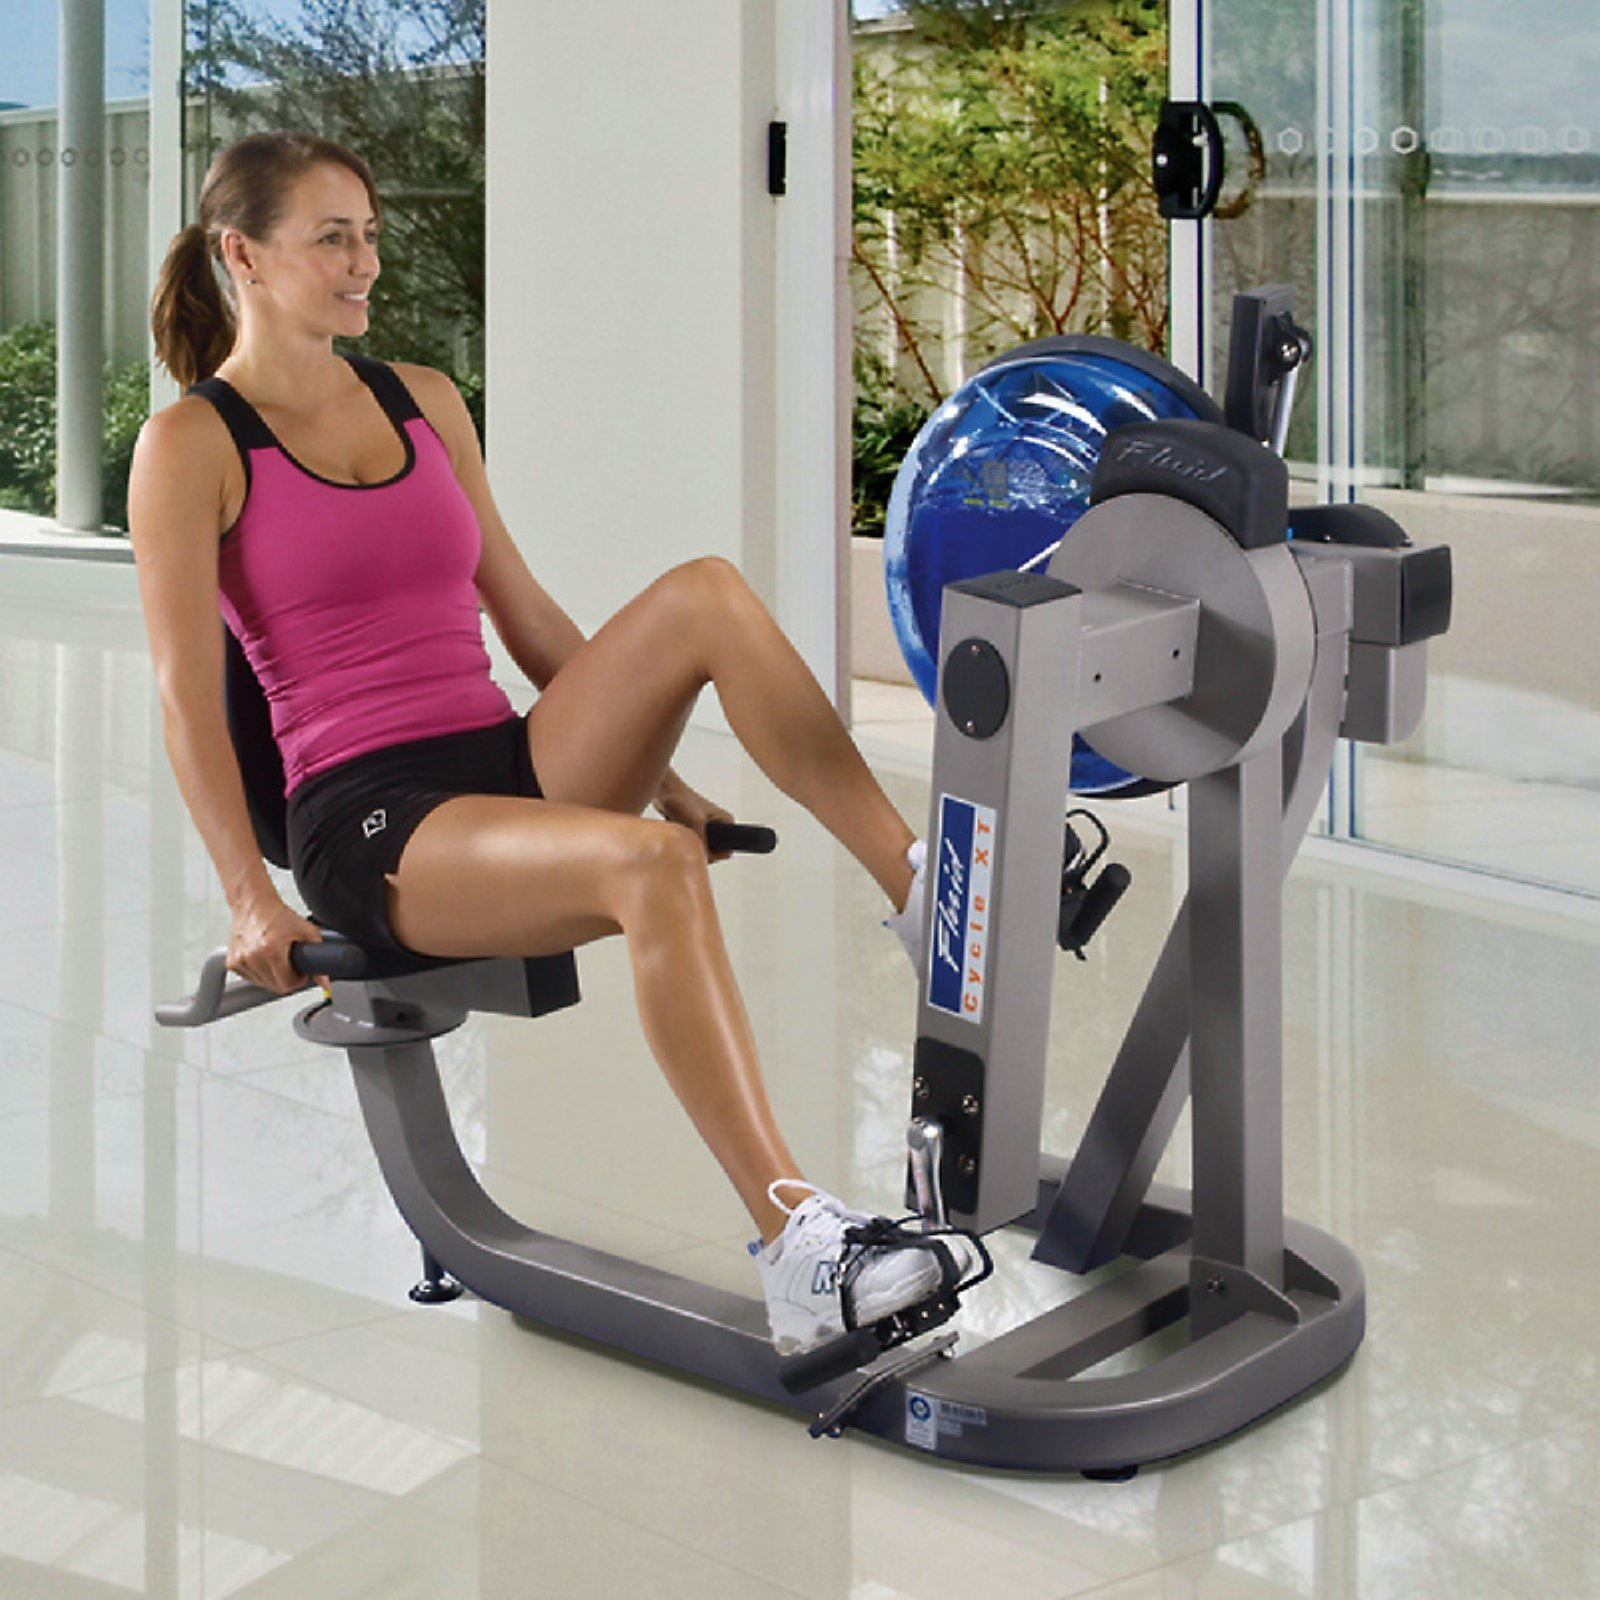 First Degree Fitness E-720 Cycle XT